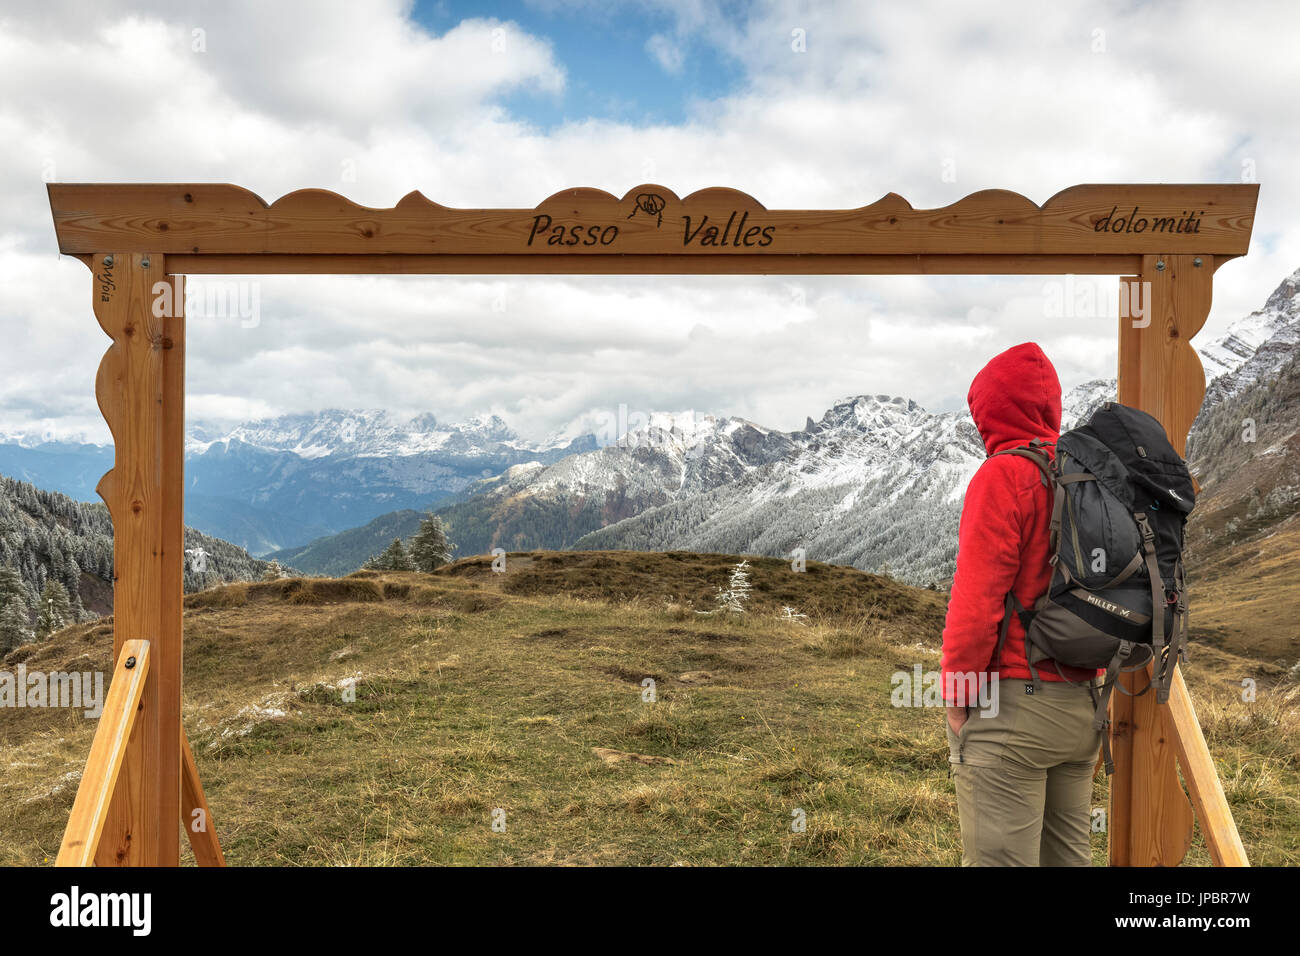 Europe, Italy, Trentino, Predazzo. Gadget for tourists, a wooden frame to take pictures on the Valles pass, Dolomites - Stock Image